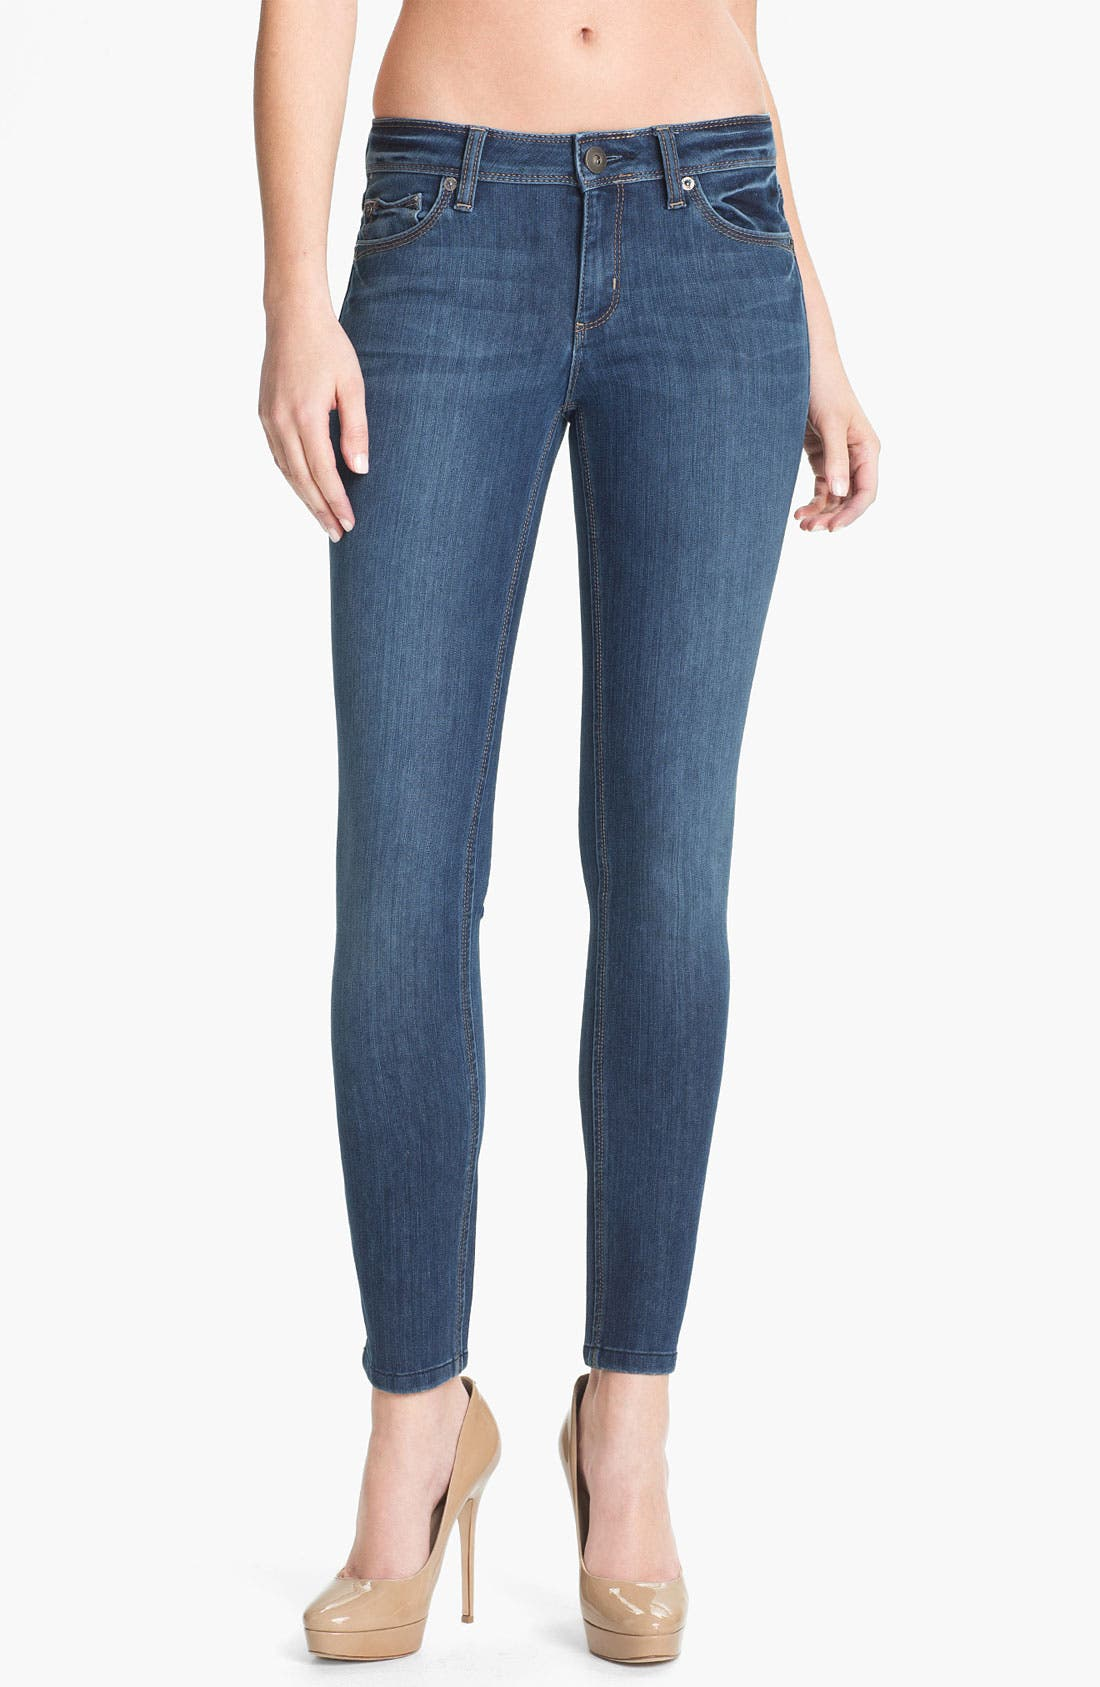 'Angel' X-Fit Stretch Denim Skinny Ankle Jeans,                         Main,                         color, Zeppelin